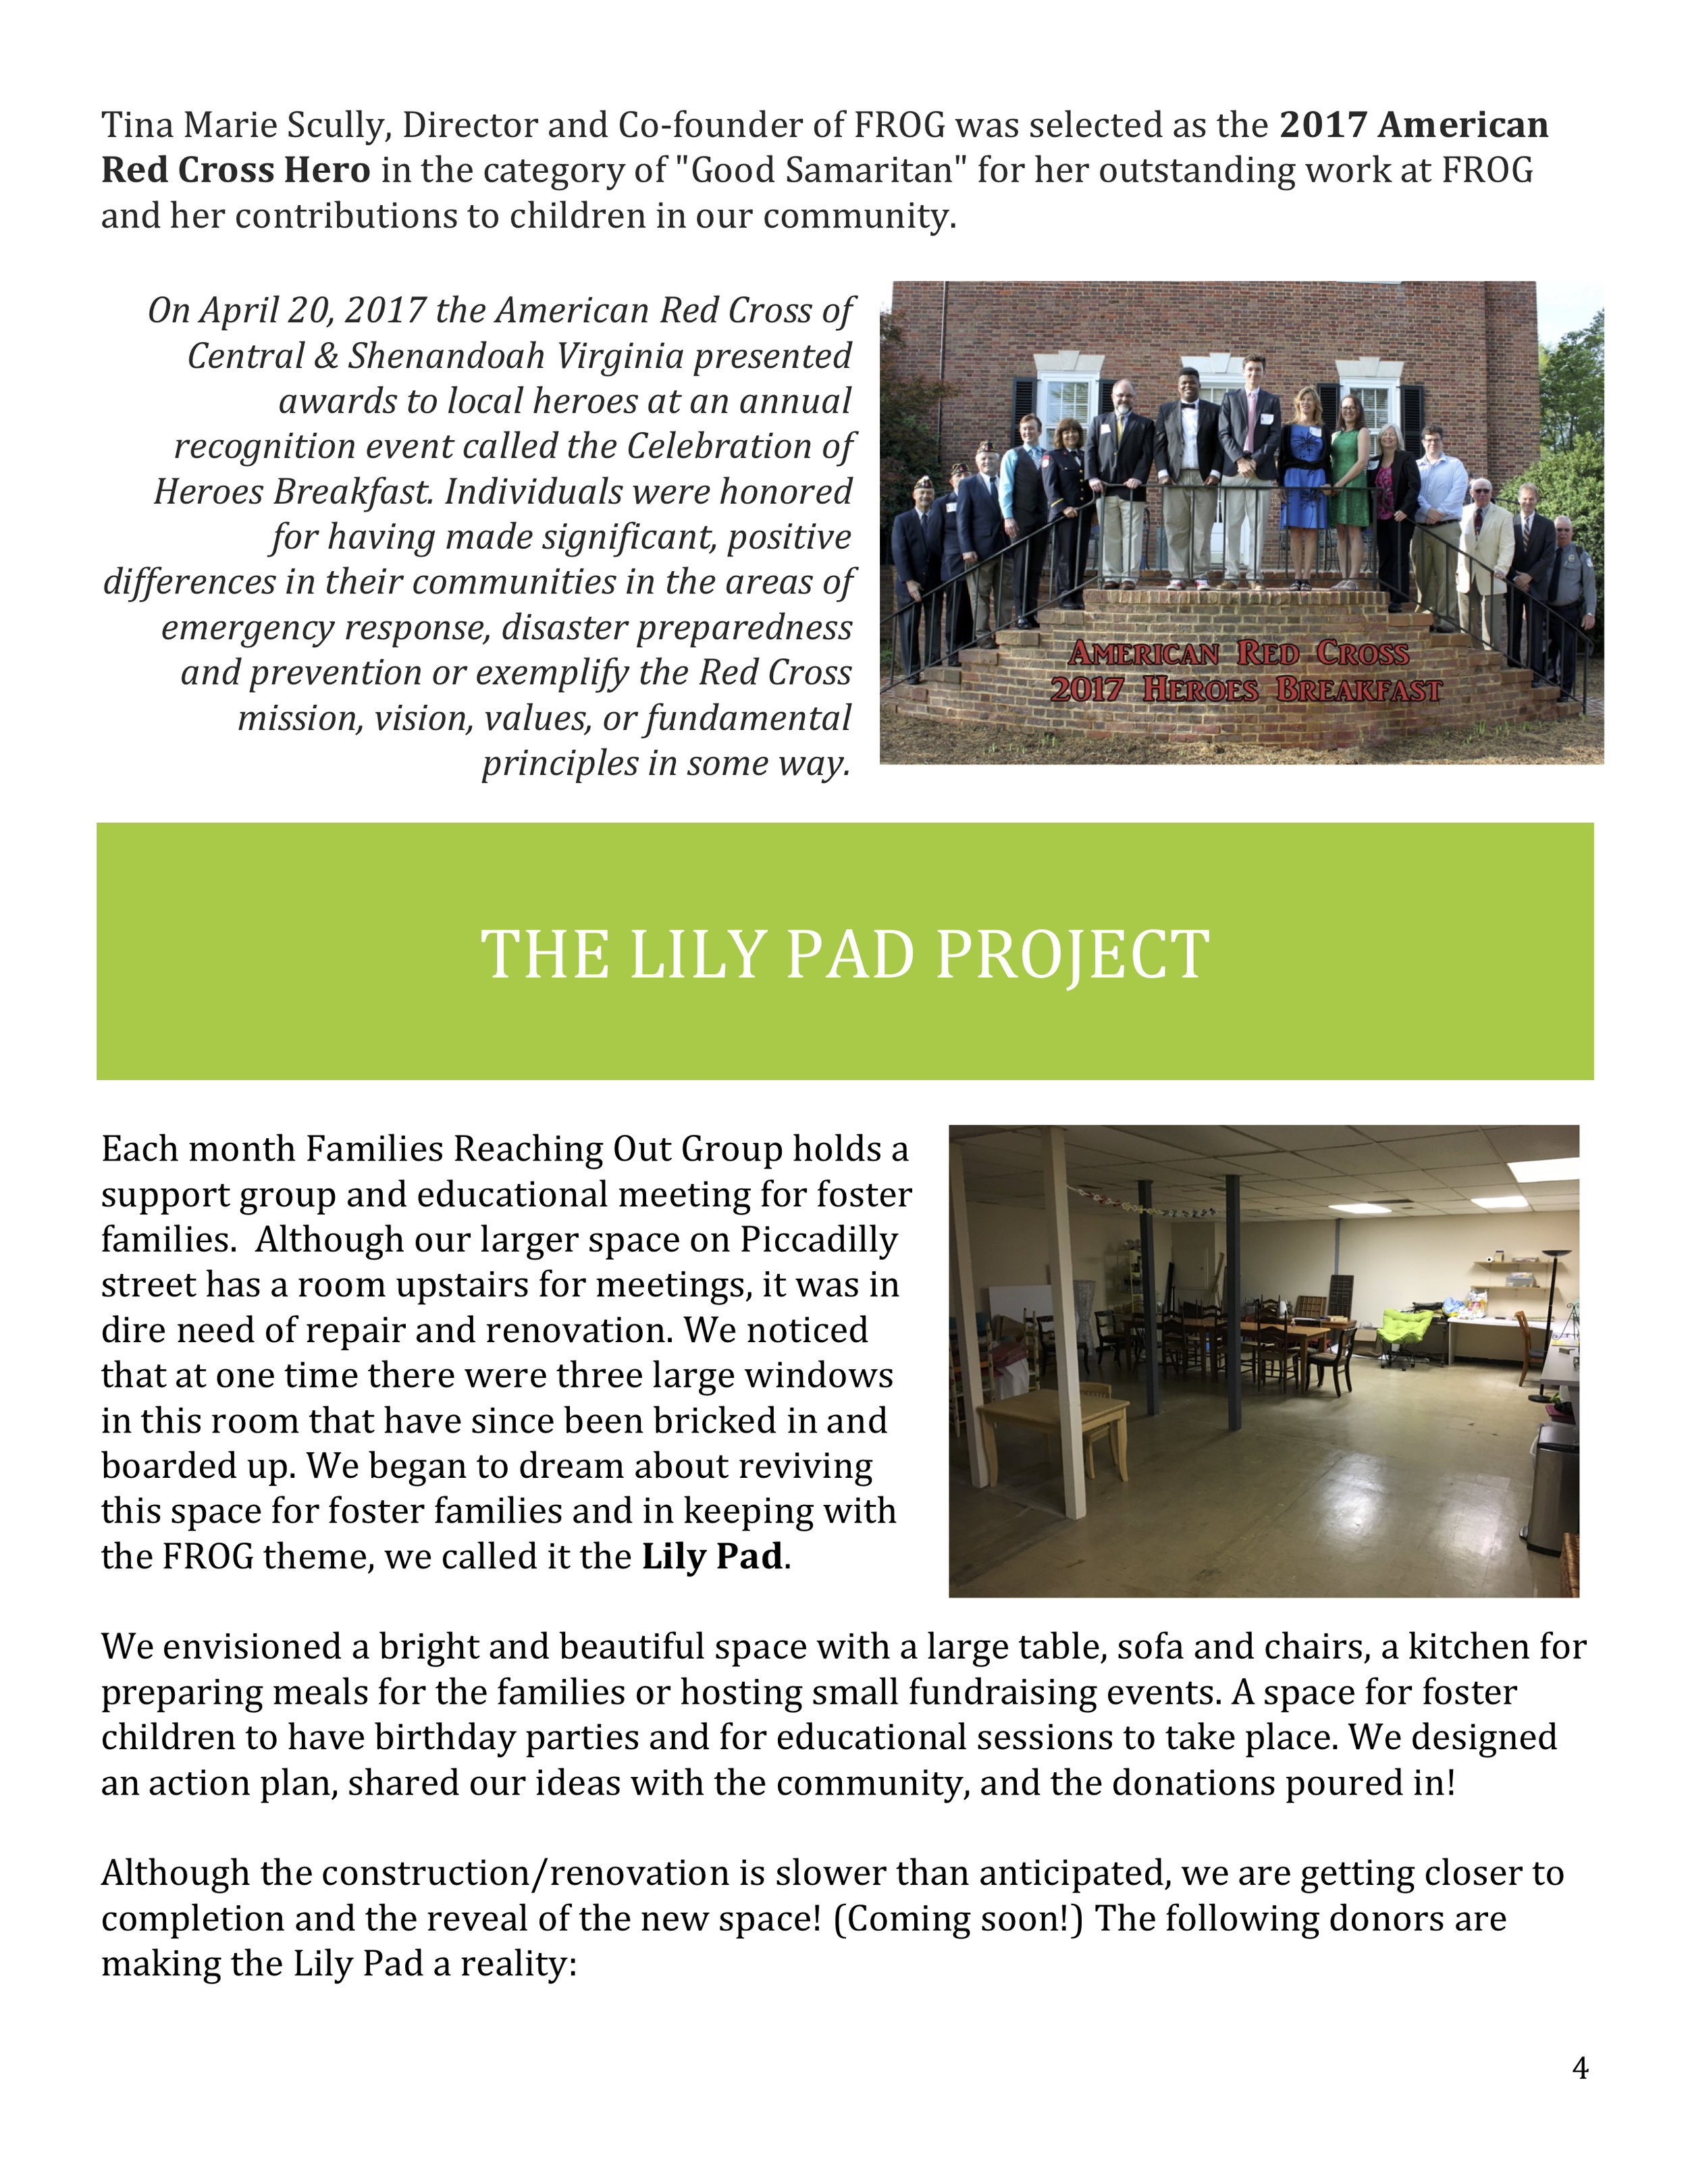 FROG-Our Year in Review-2017 Page 4.jpg